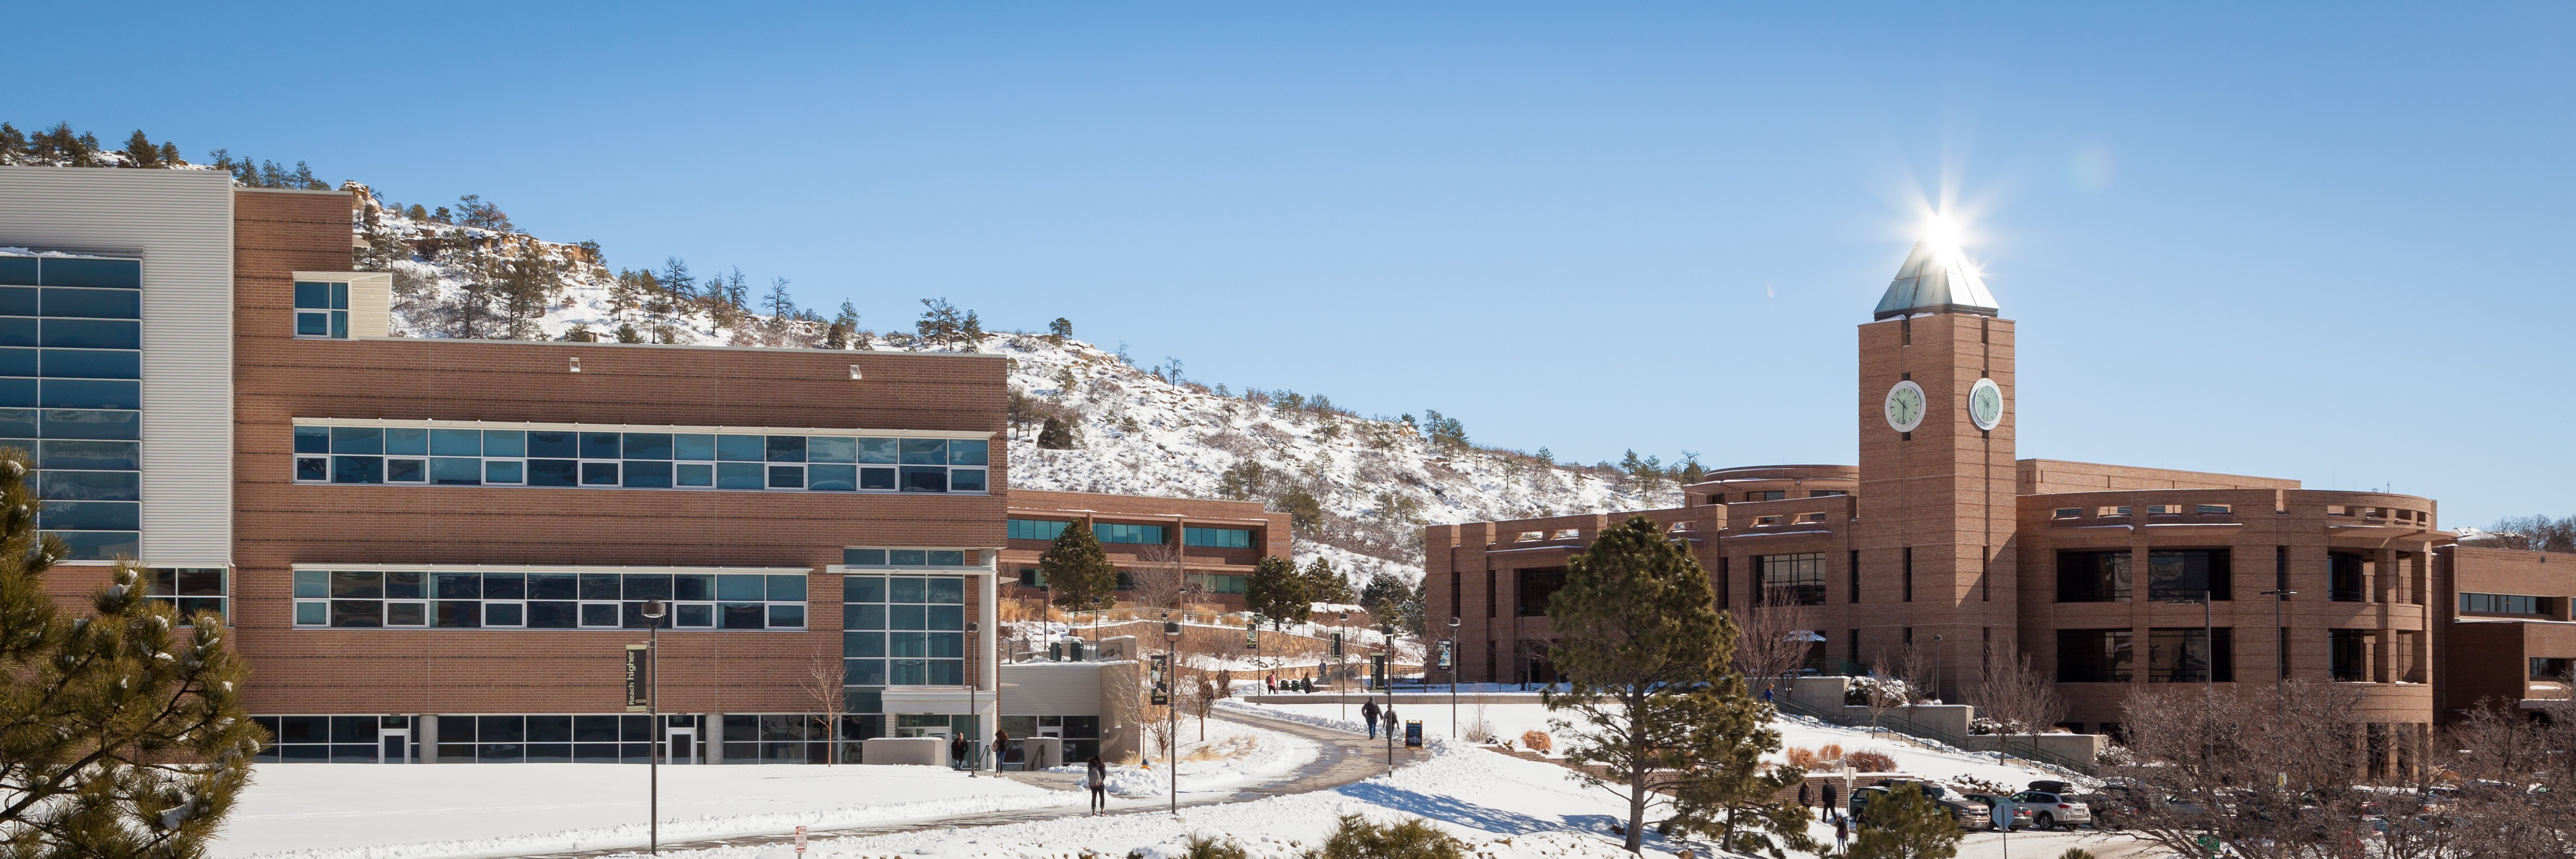 UCCS Campus in winter